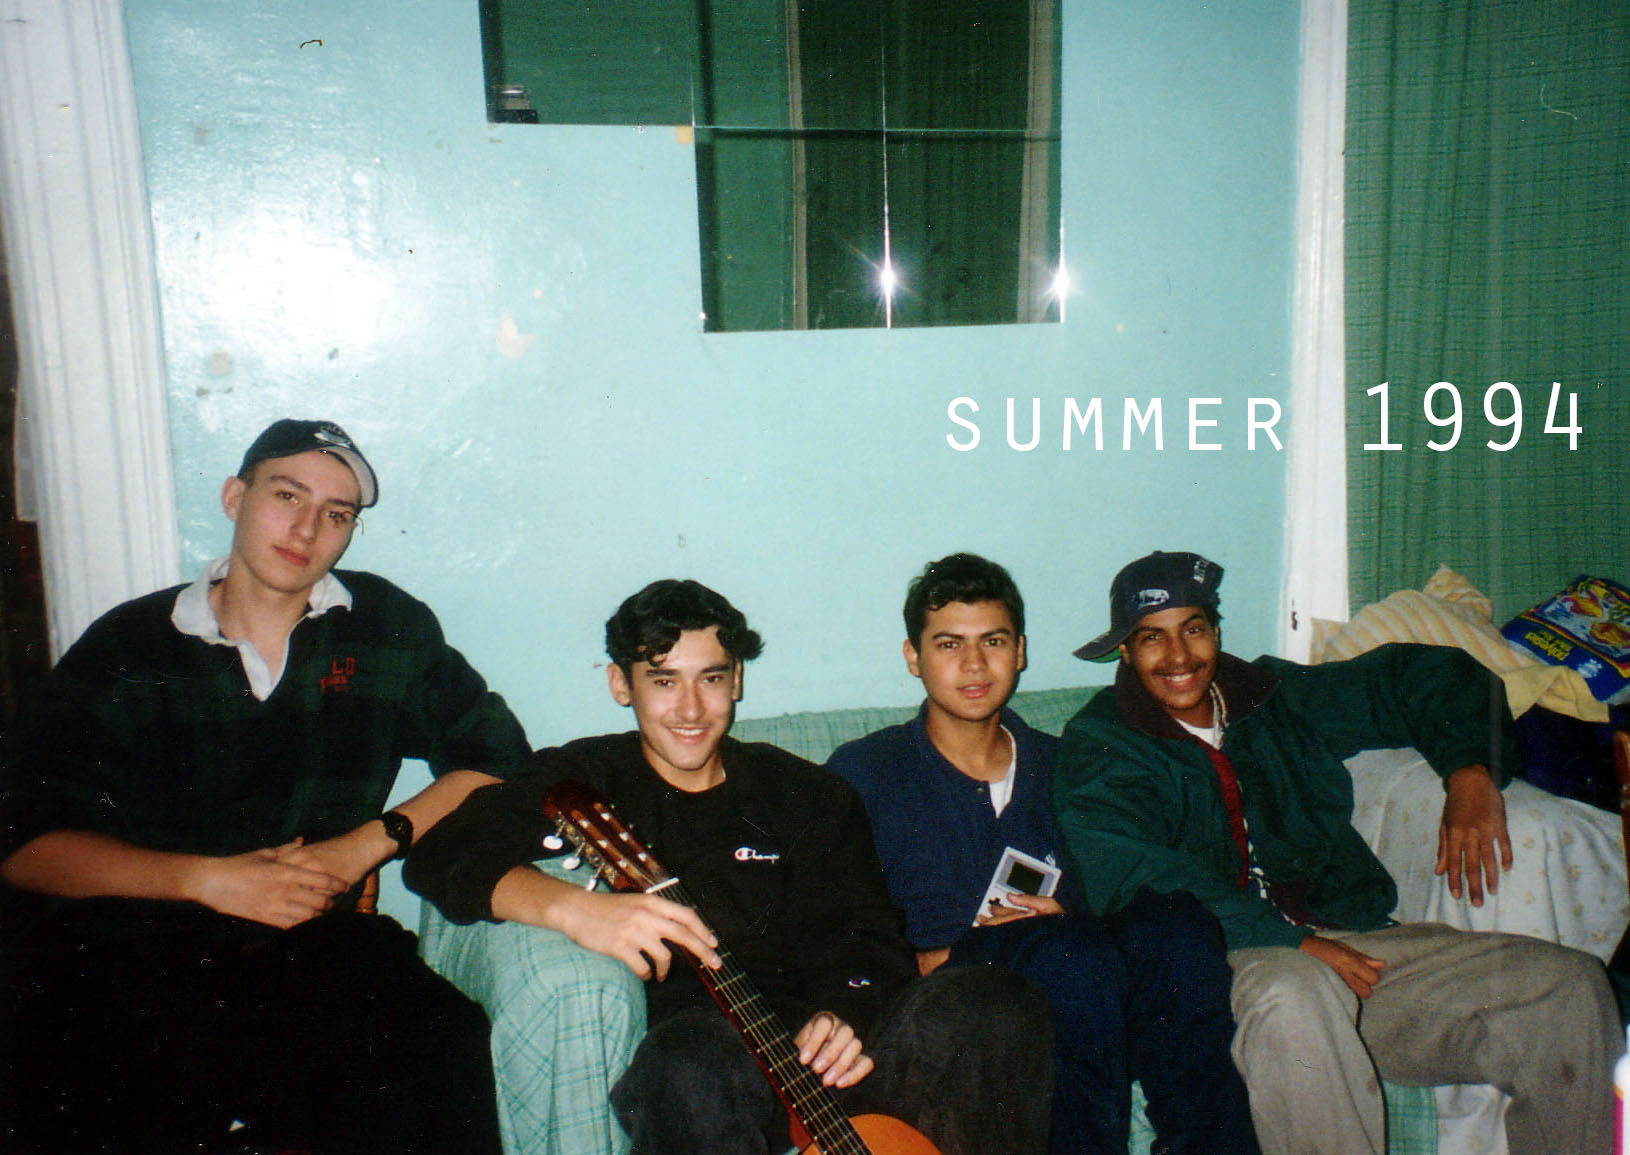 age-18-summer-1994-inside-jpg.44452_Pics of us as youngsters compared to now_People & Cultures_Squat the Planet_11:10 AM